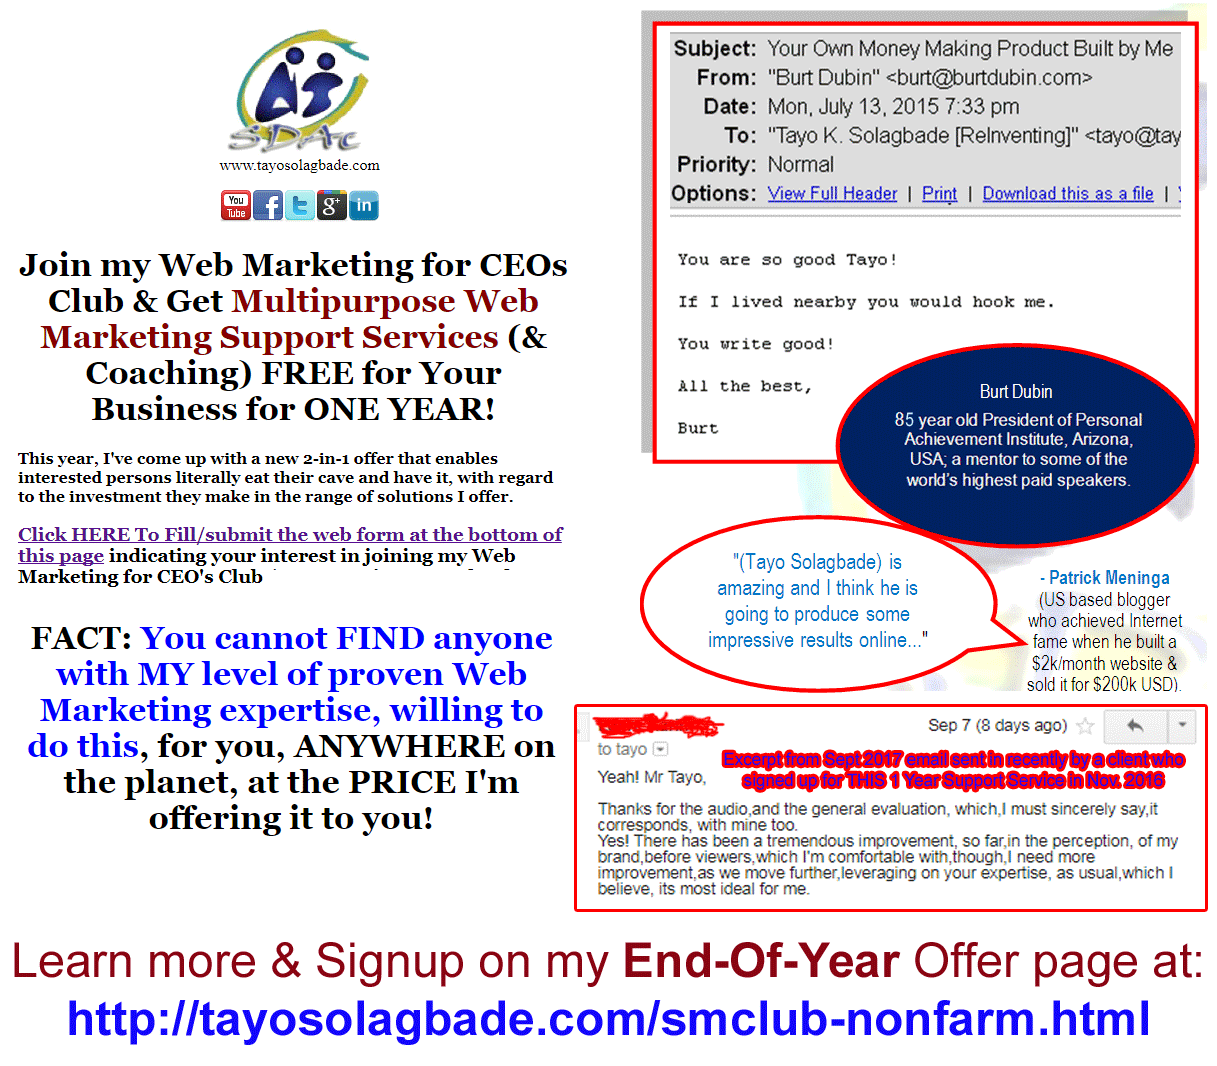 wm4ceo-eoy-2017-offer